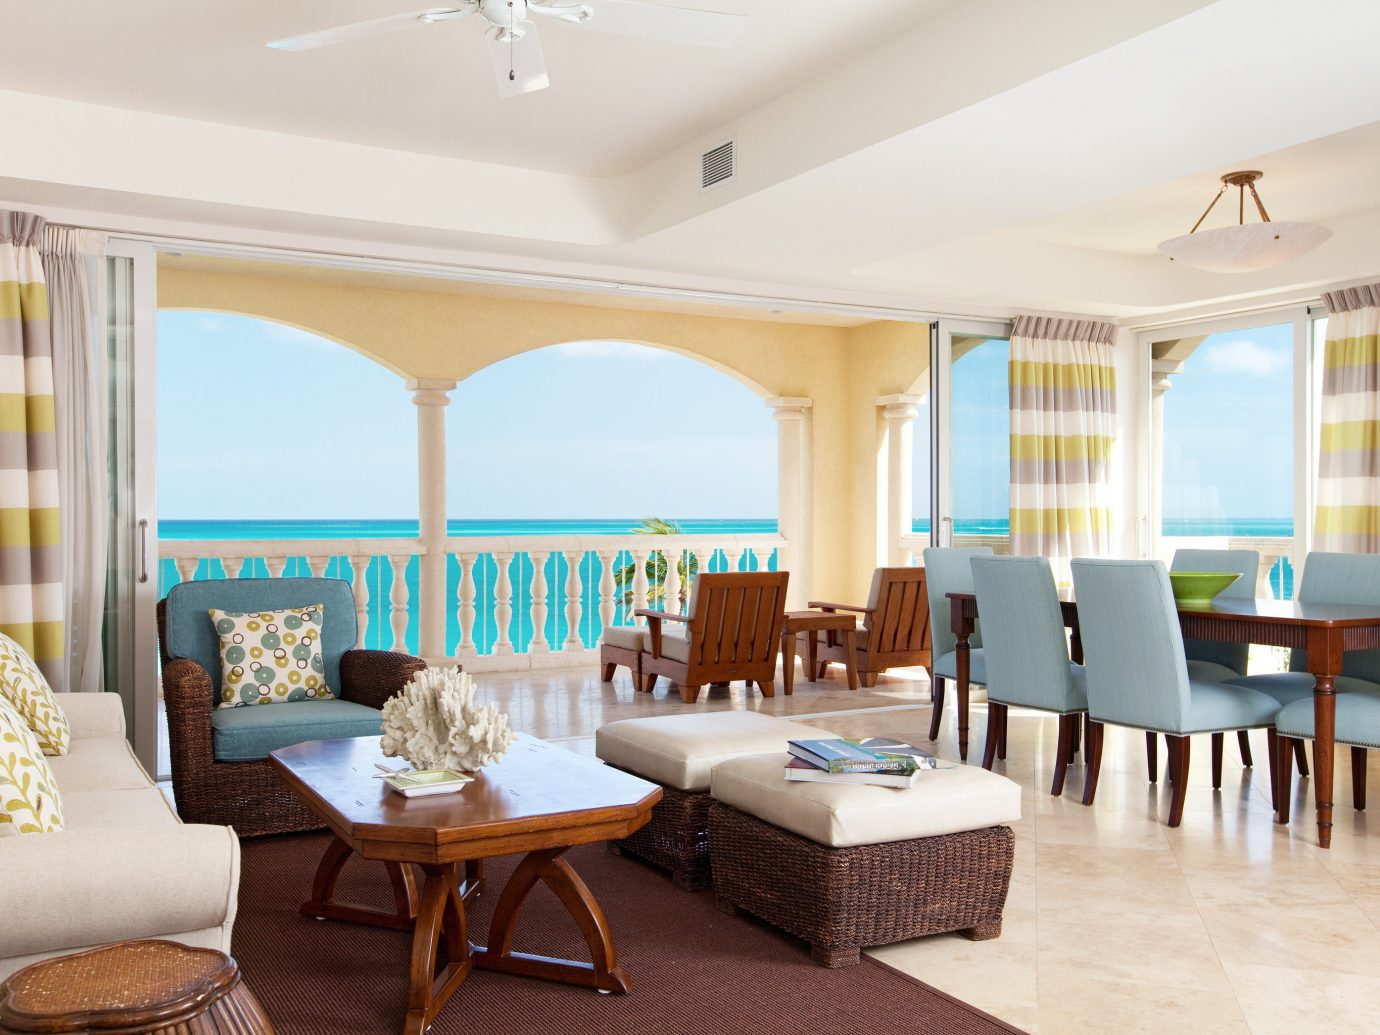 Beachfront Bedroom Hotels Living Luxury Romance Trip Ideas indoor ceiling floor room wall window property dining room estate living room furniture Resort Suite interior design home real estate Villa condominium function hall restaurant area